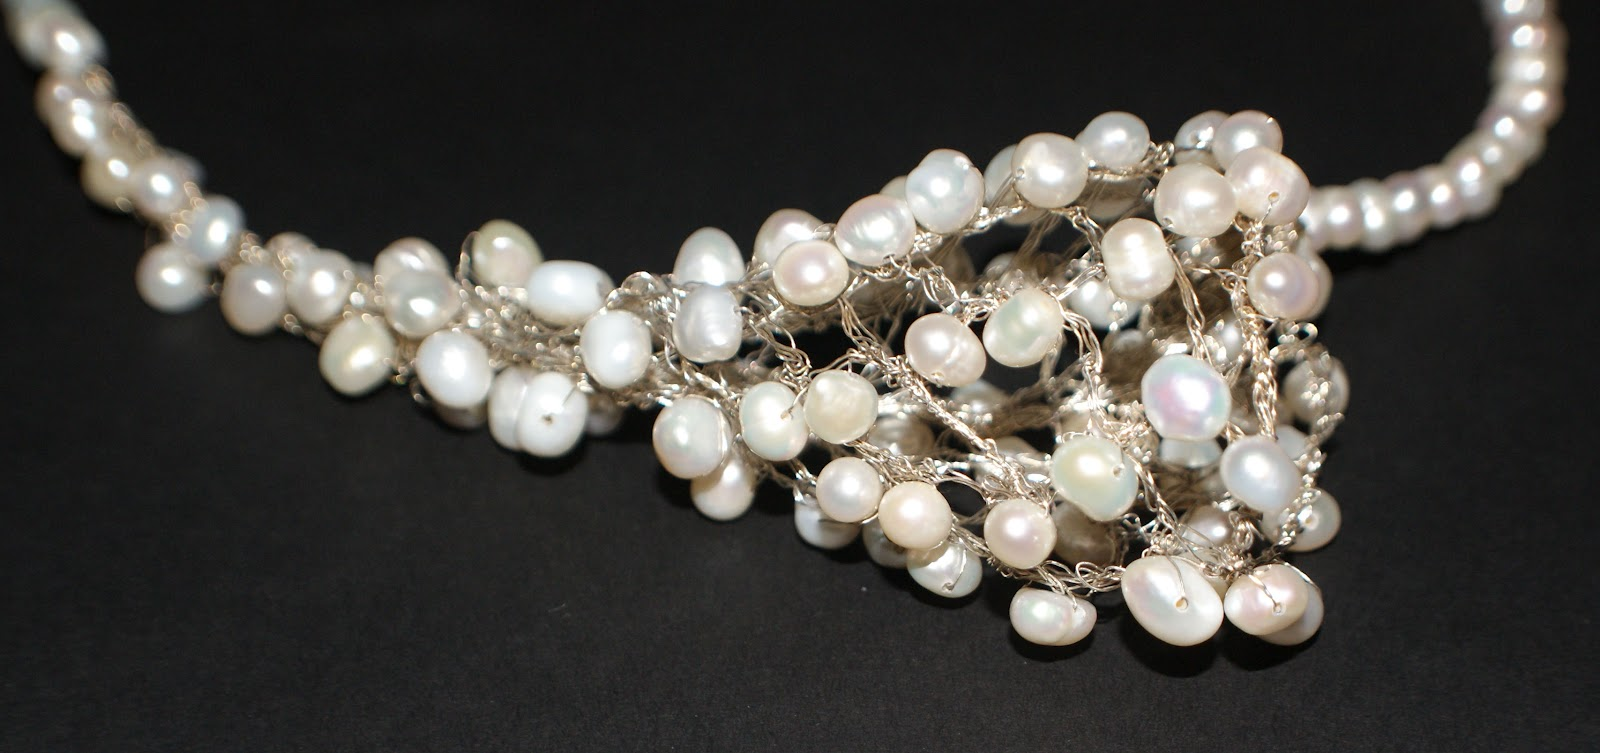 Handmade bridal and wedding jewelry by vintage touch flower around